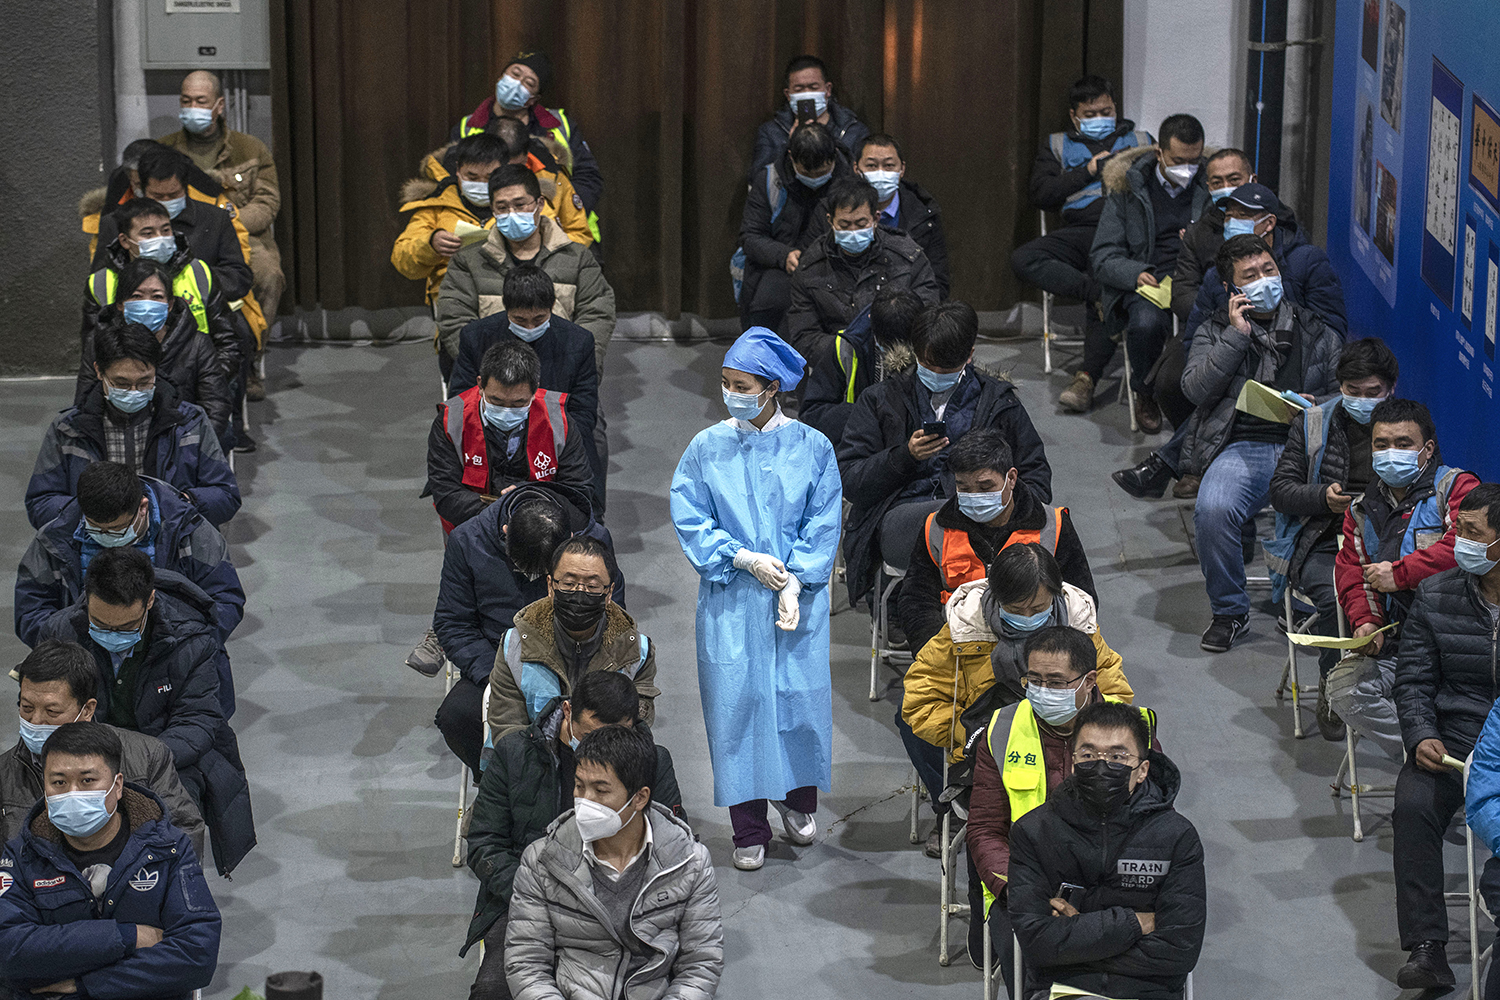 Chinese workers, including security guards, wait to receive a COVID-19 vaccine at a mass vaccination center in Beijing on Jan. 15. Kevin Frayer/Getty Images